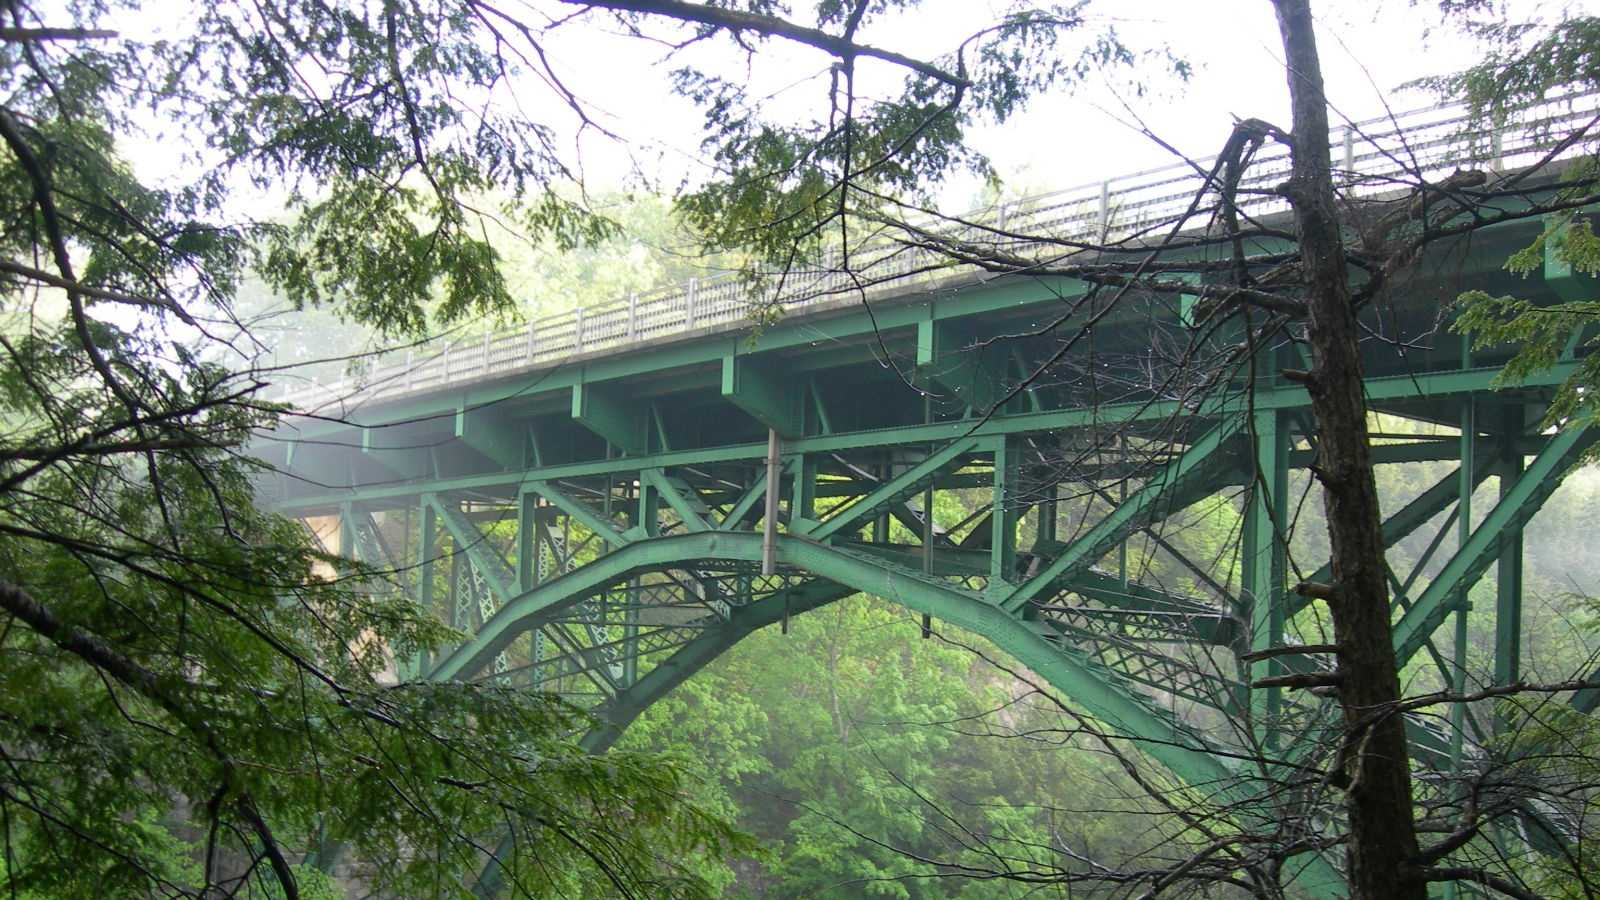 The 285-foot bridge spanning Quechee Gorge.